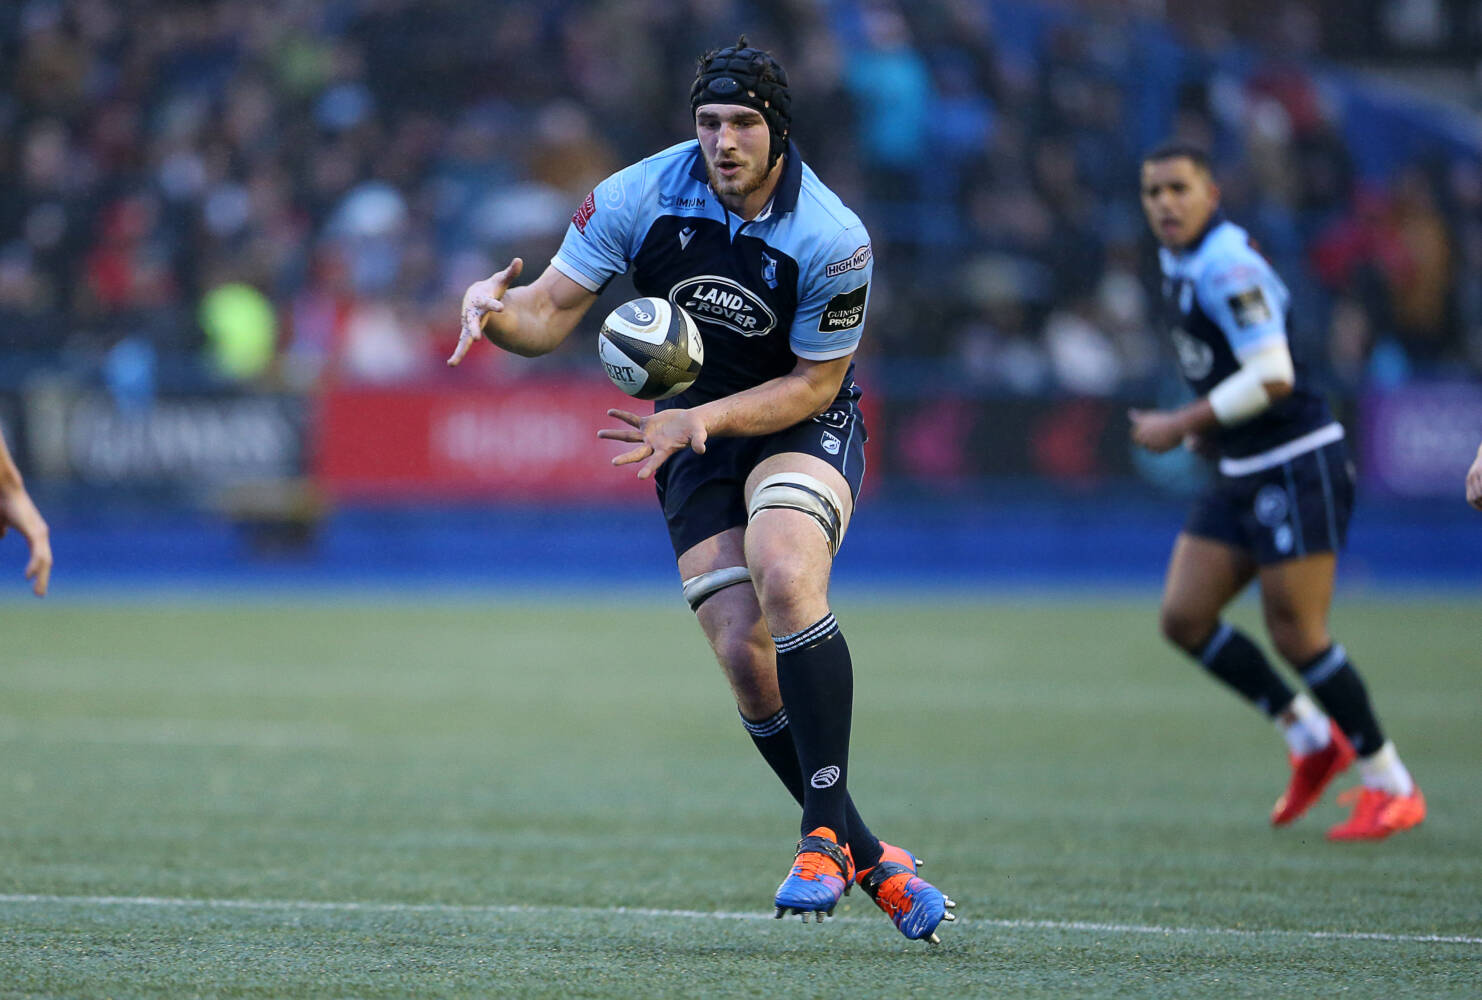 Ratti extends Cardiff Blues stay